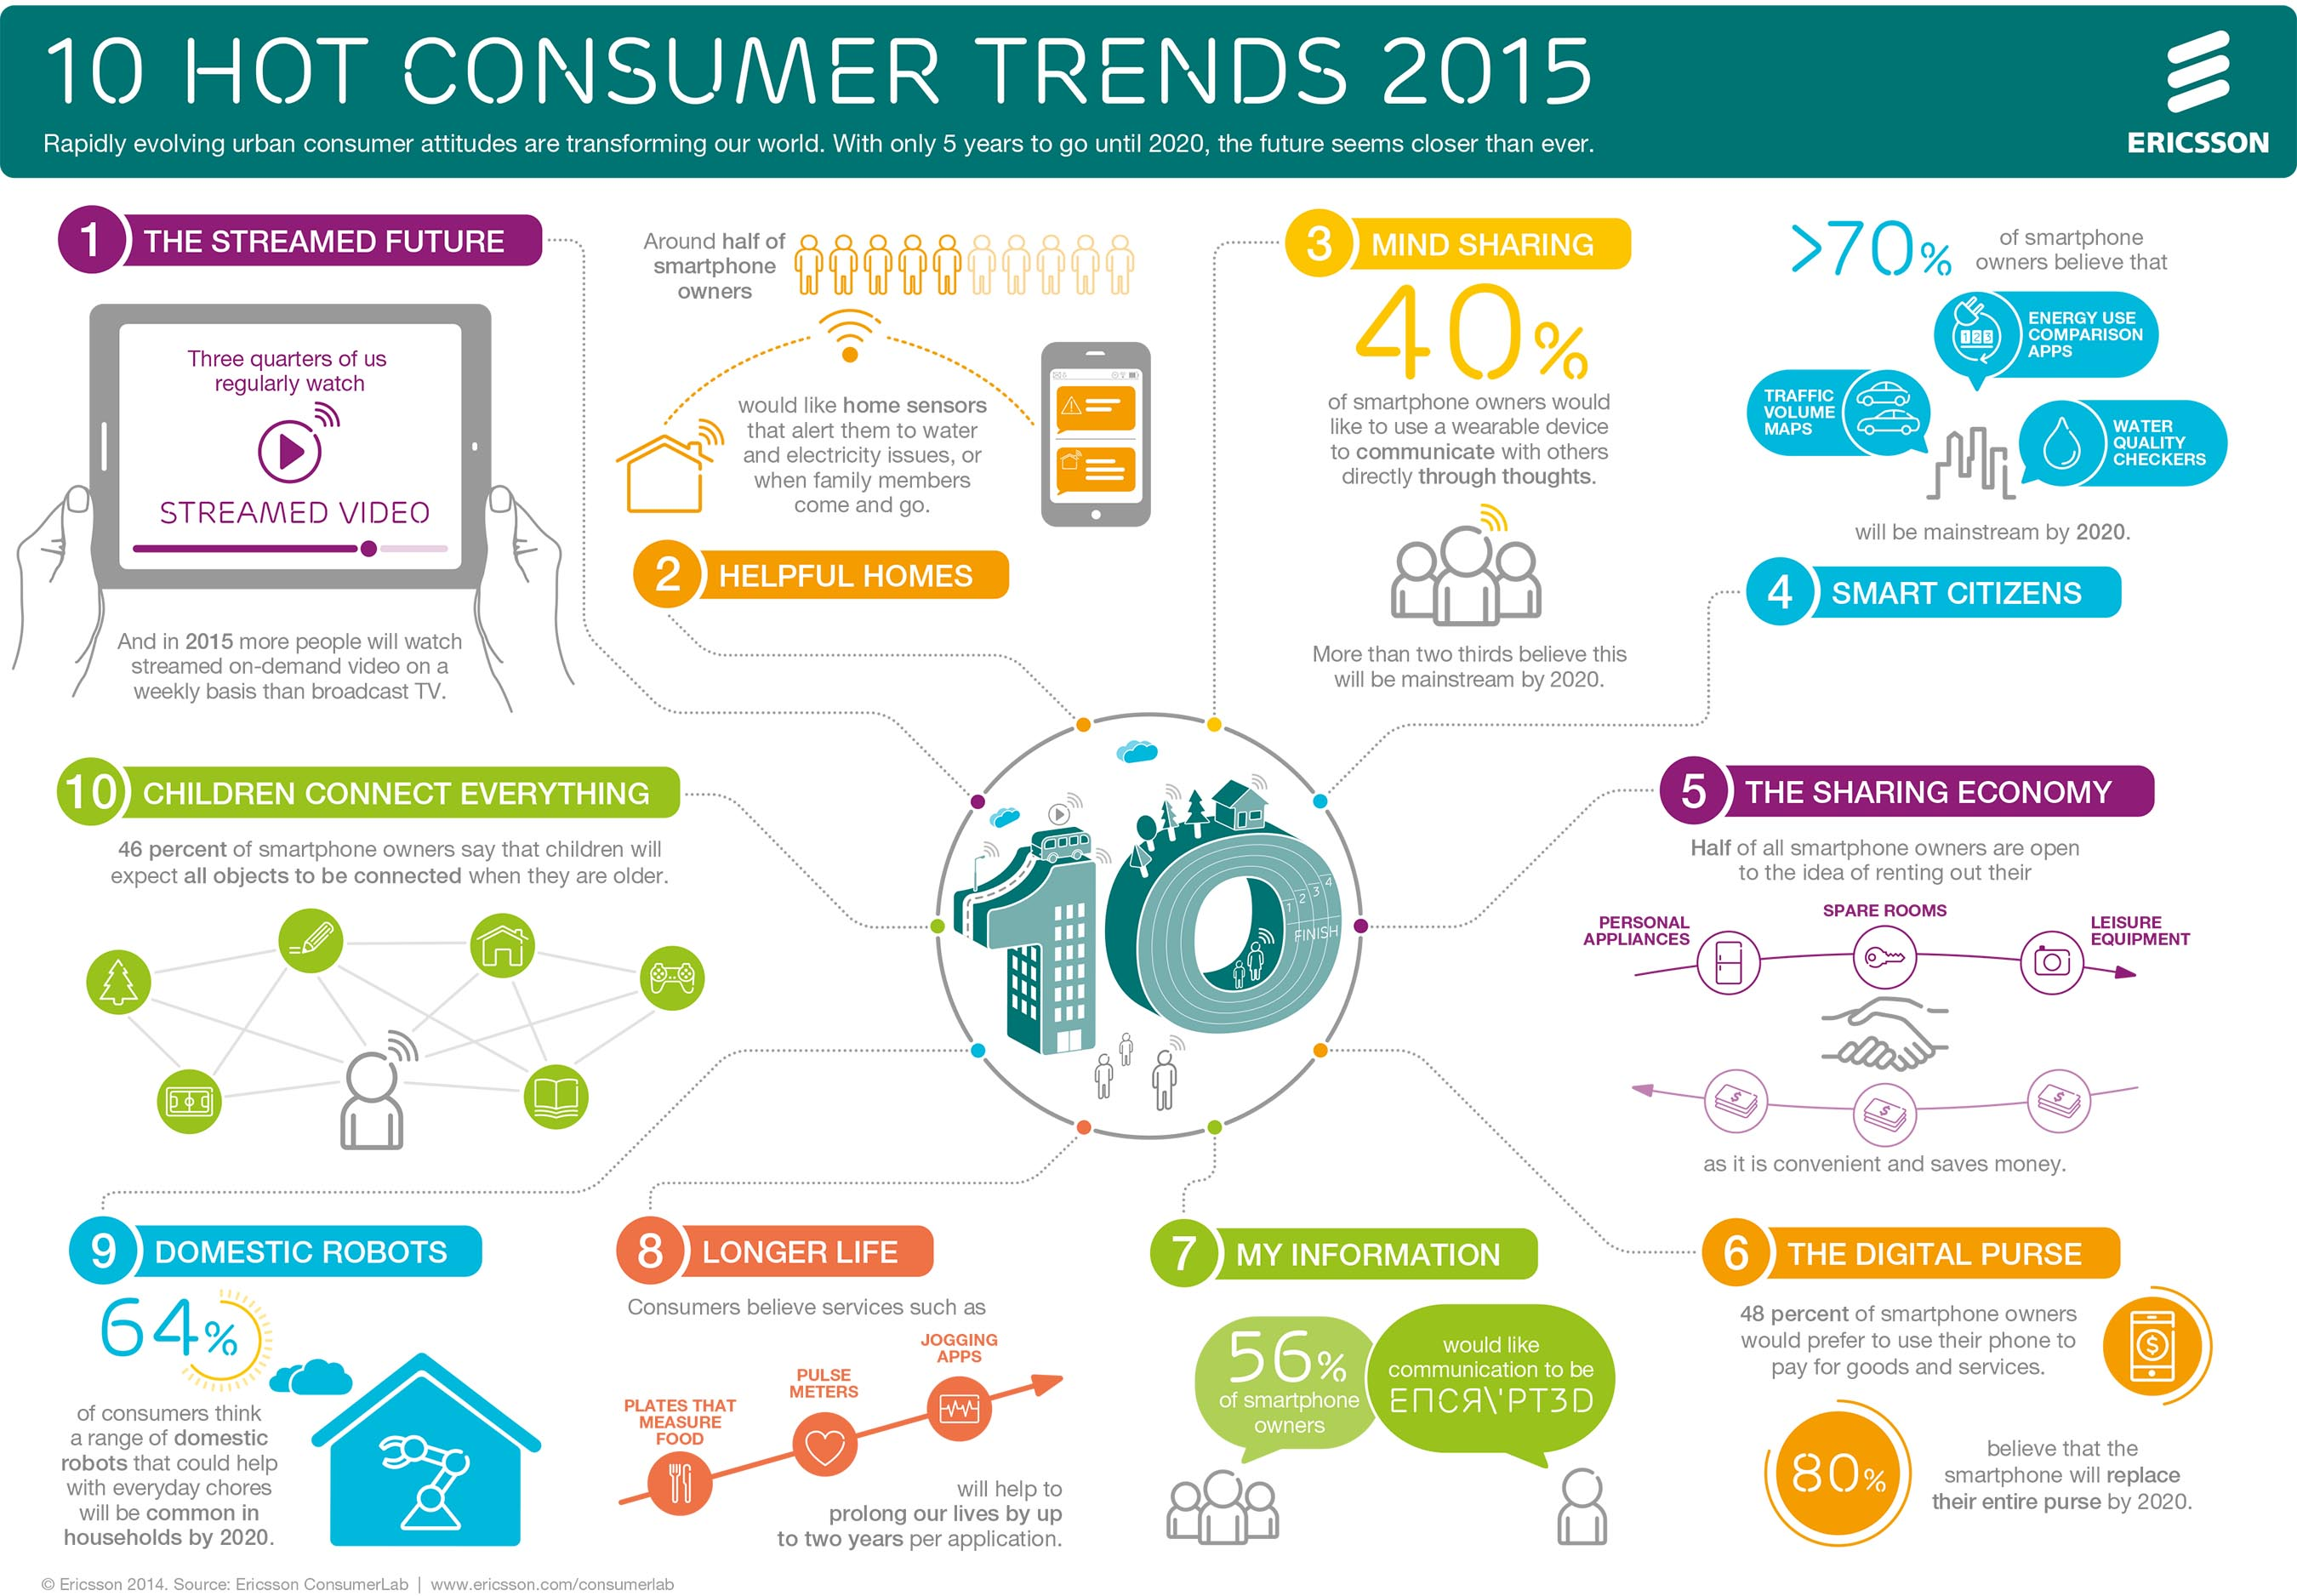 Ericsson S 10 Hot Consumer Trends For 2015 Connectivity